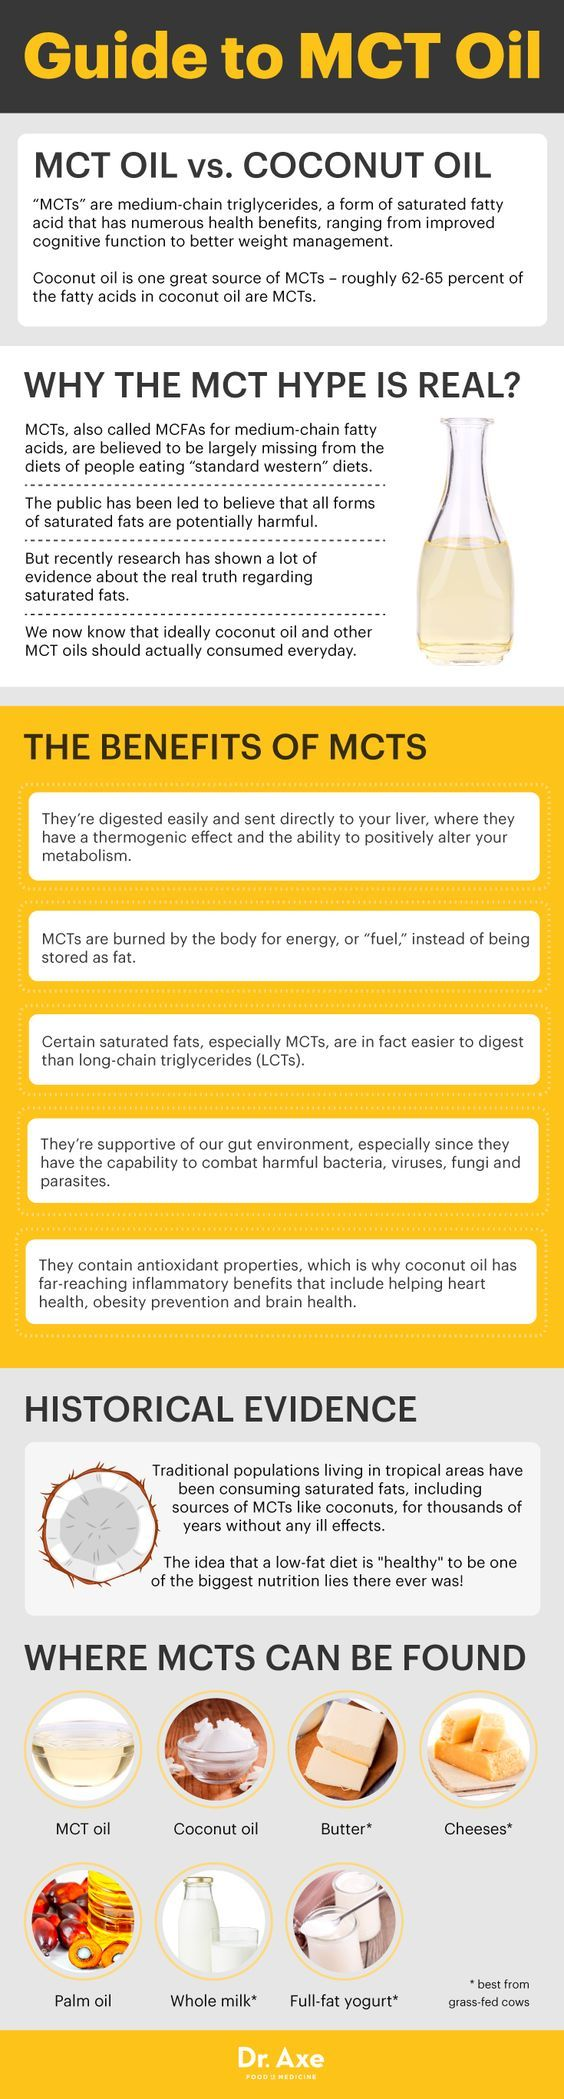 Guide to MCT oil - Dr. Axe http://www.draxe.com #health #holistic #natural